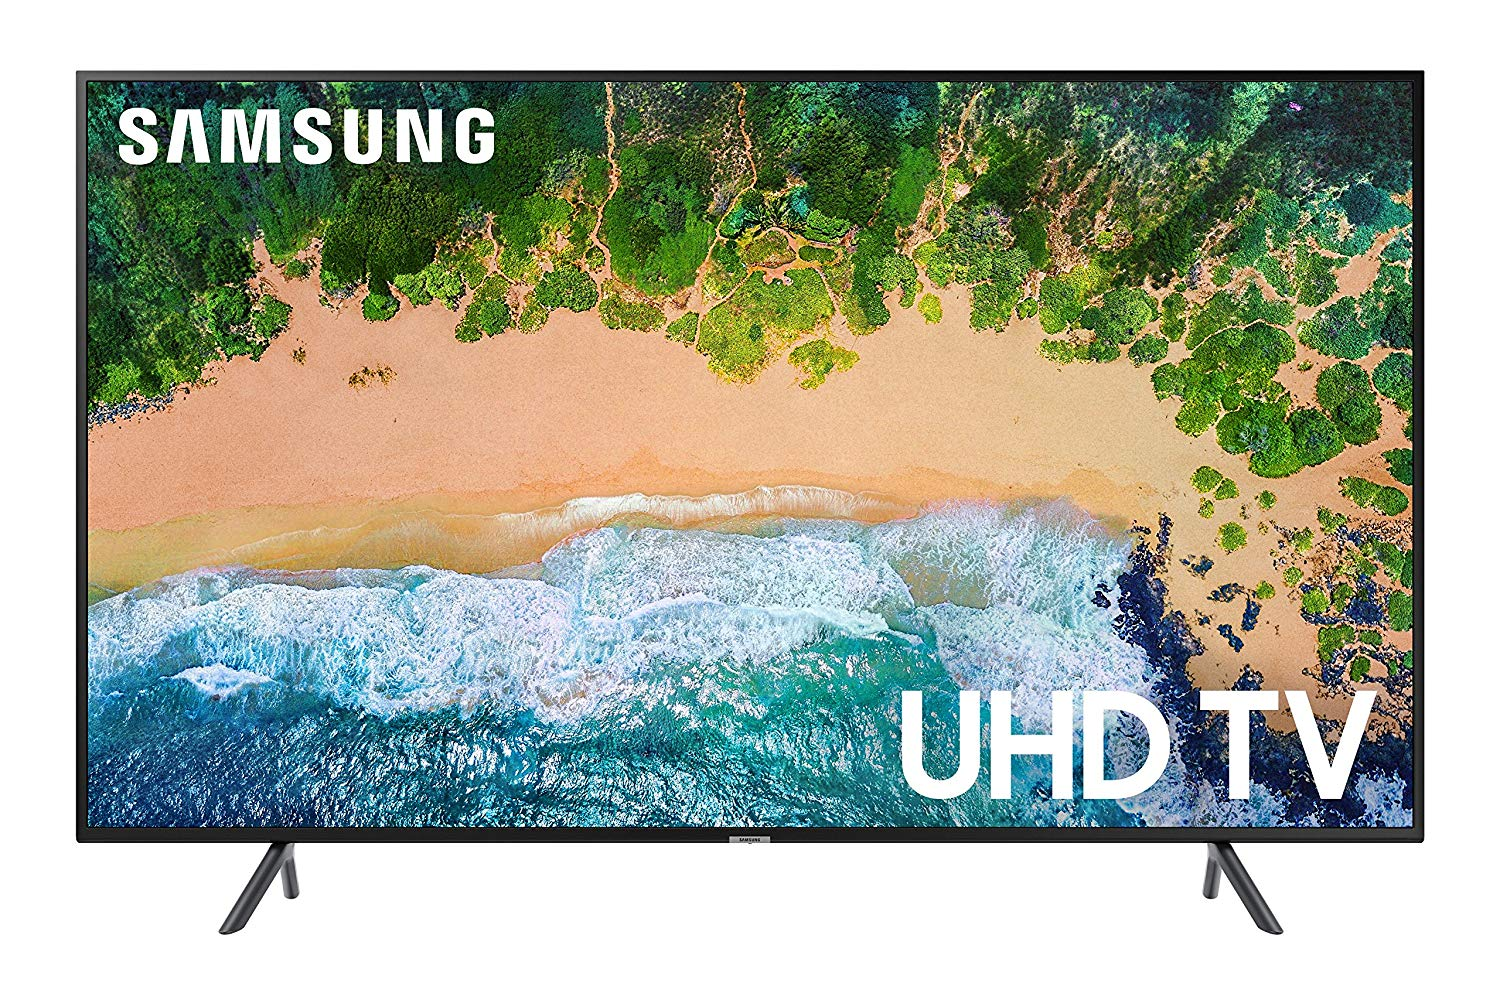 Samsung 43-Inch 4K Smart LED TV